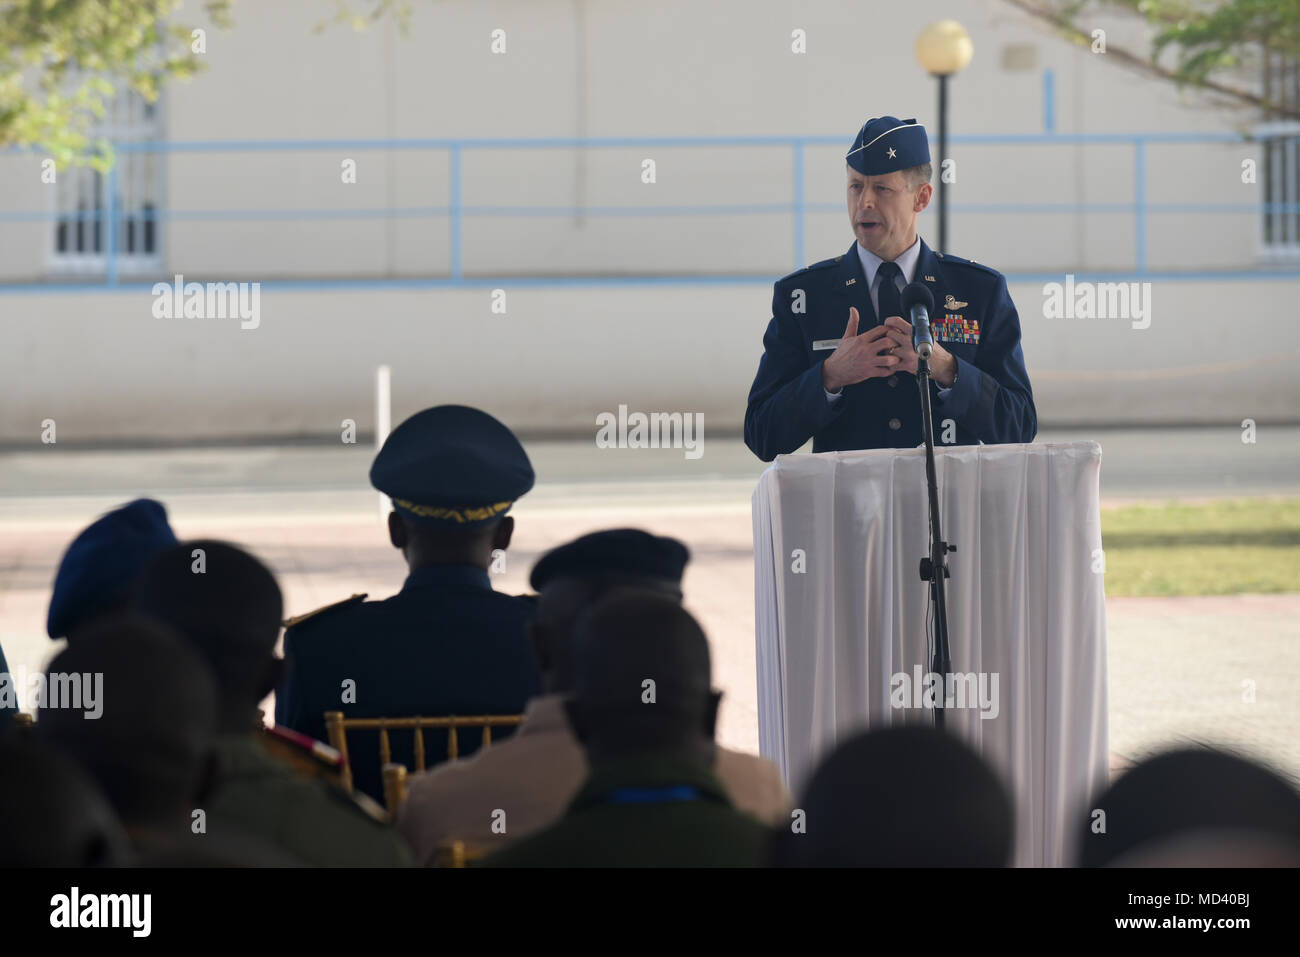 U.S. Air Force Brig. Gen. Dieter Bareihs, U.S. Air Forces in Africa director of plans, programs and analyses, speaks during the opening ceremony of African Partnership Flight Senegal at Captain Andalla Cissé Air Base, Senegal, March 19, 2018. The APF program is U.S. Air Forces in Africa's premier security cooperation program with African partner nations to improve professional military aviation knowledge and skills. (U.S. Air Force photo by Airman 1st Class Eli Chevalier) - Stock Image